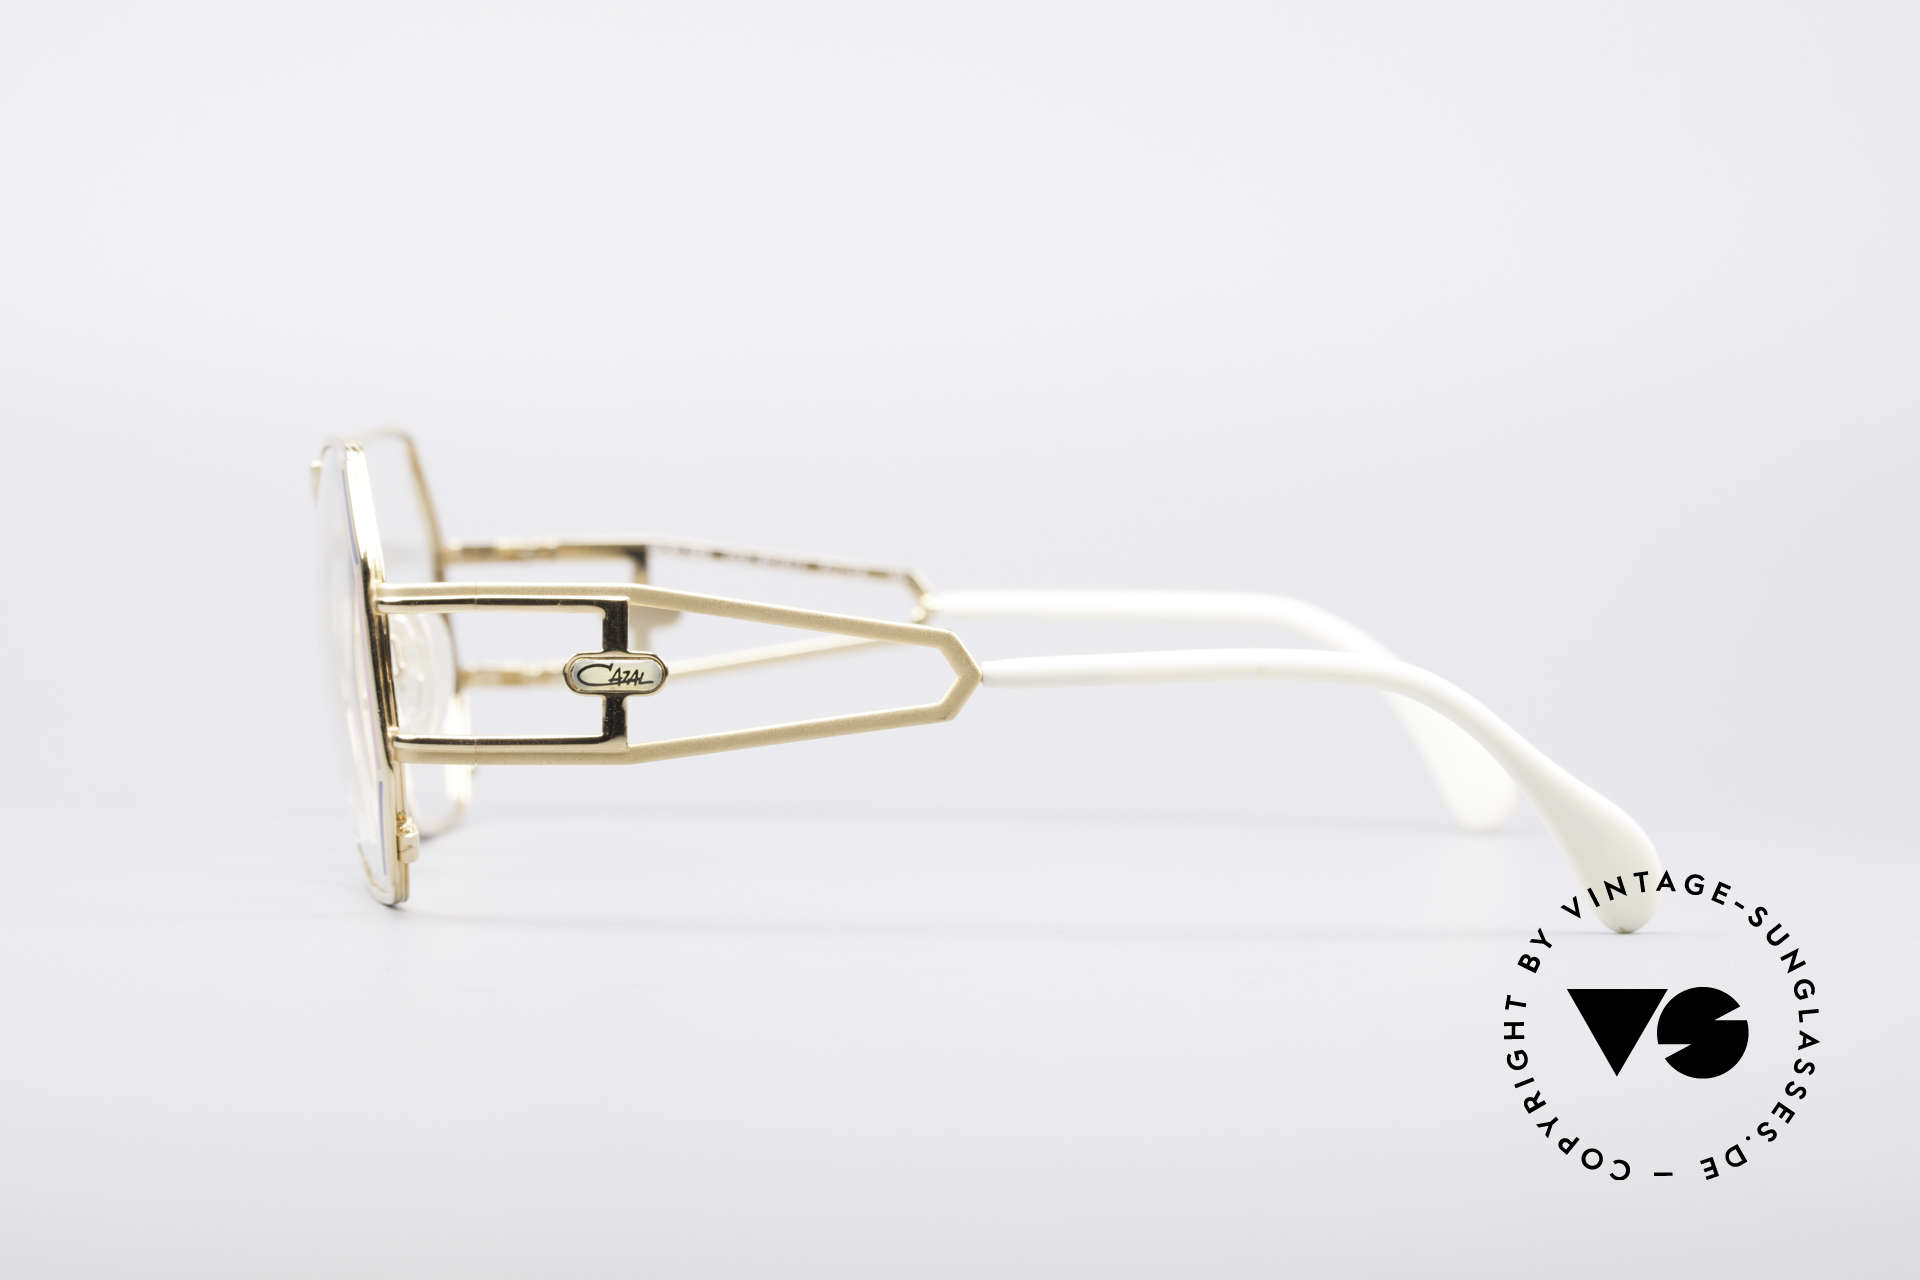 Cazal 225 80's Old School HipHop Frame, lovely eye-catcher in unworn condition; truly vintage, Made for Women